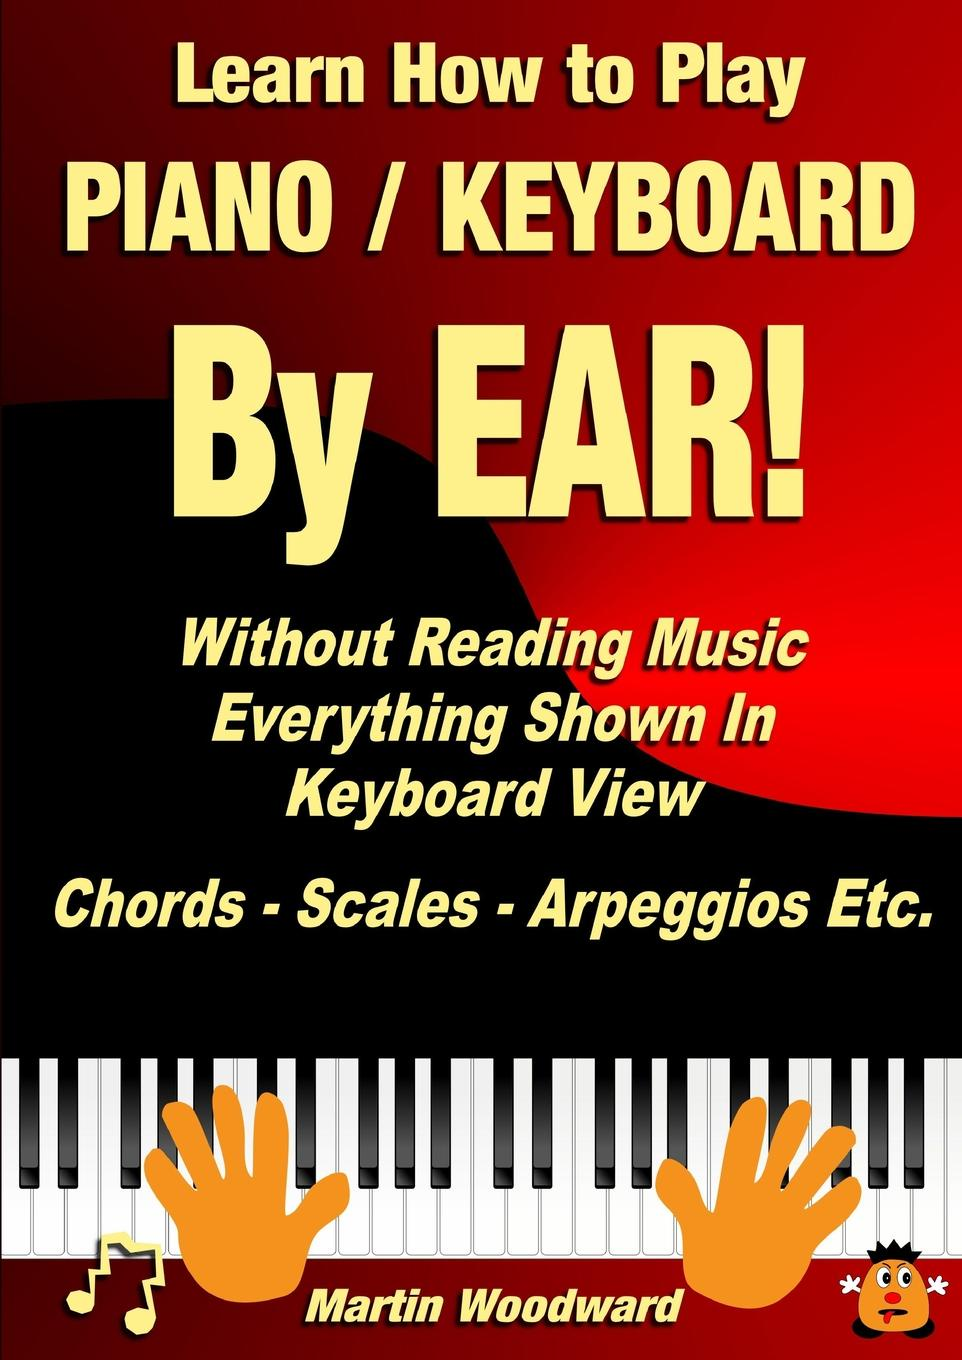 Martin Woodward Learn How to Play Piano / Keyboard BY EAR. Without Reading Music. Everything Shown In Keyboard View Chords - Scales - Arpeggios Etc. new us keyboard for ibm thinkpad e540 e531 l540 w540 t540 t540p laptop keyboard free shipping